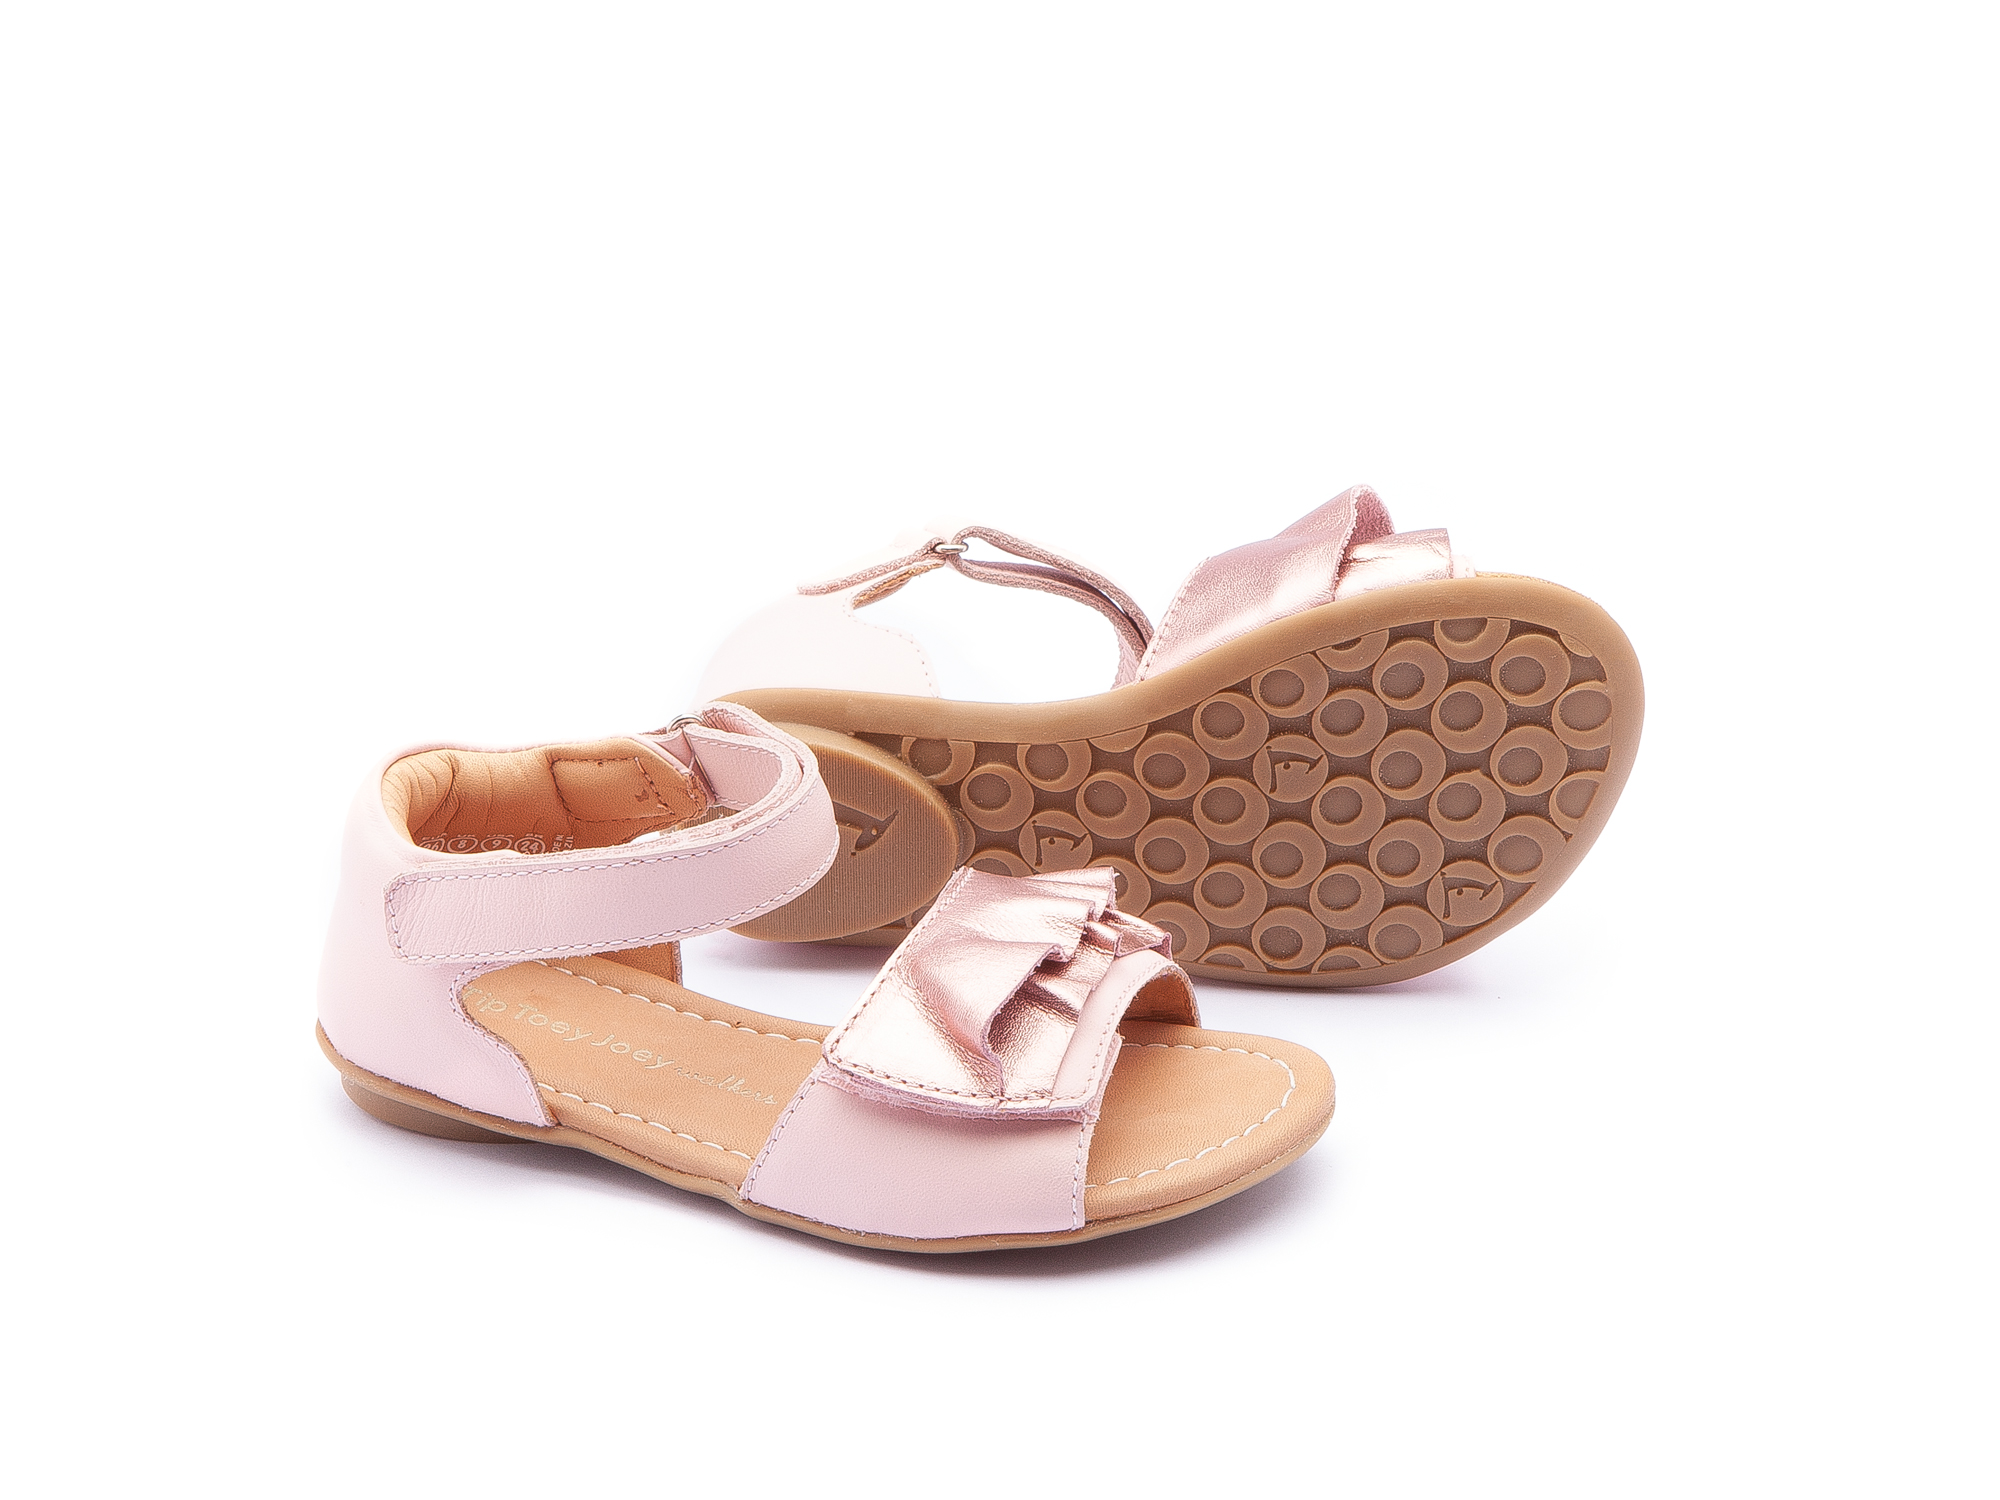 Sandália Little Wind Rose Gold/ Blossom Pink Toddler 2 à 4 anos - 2